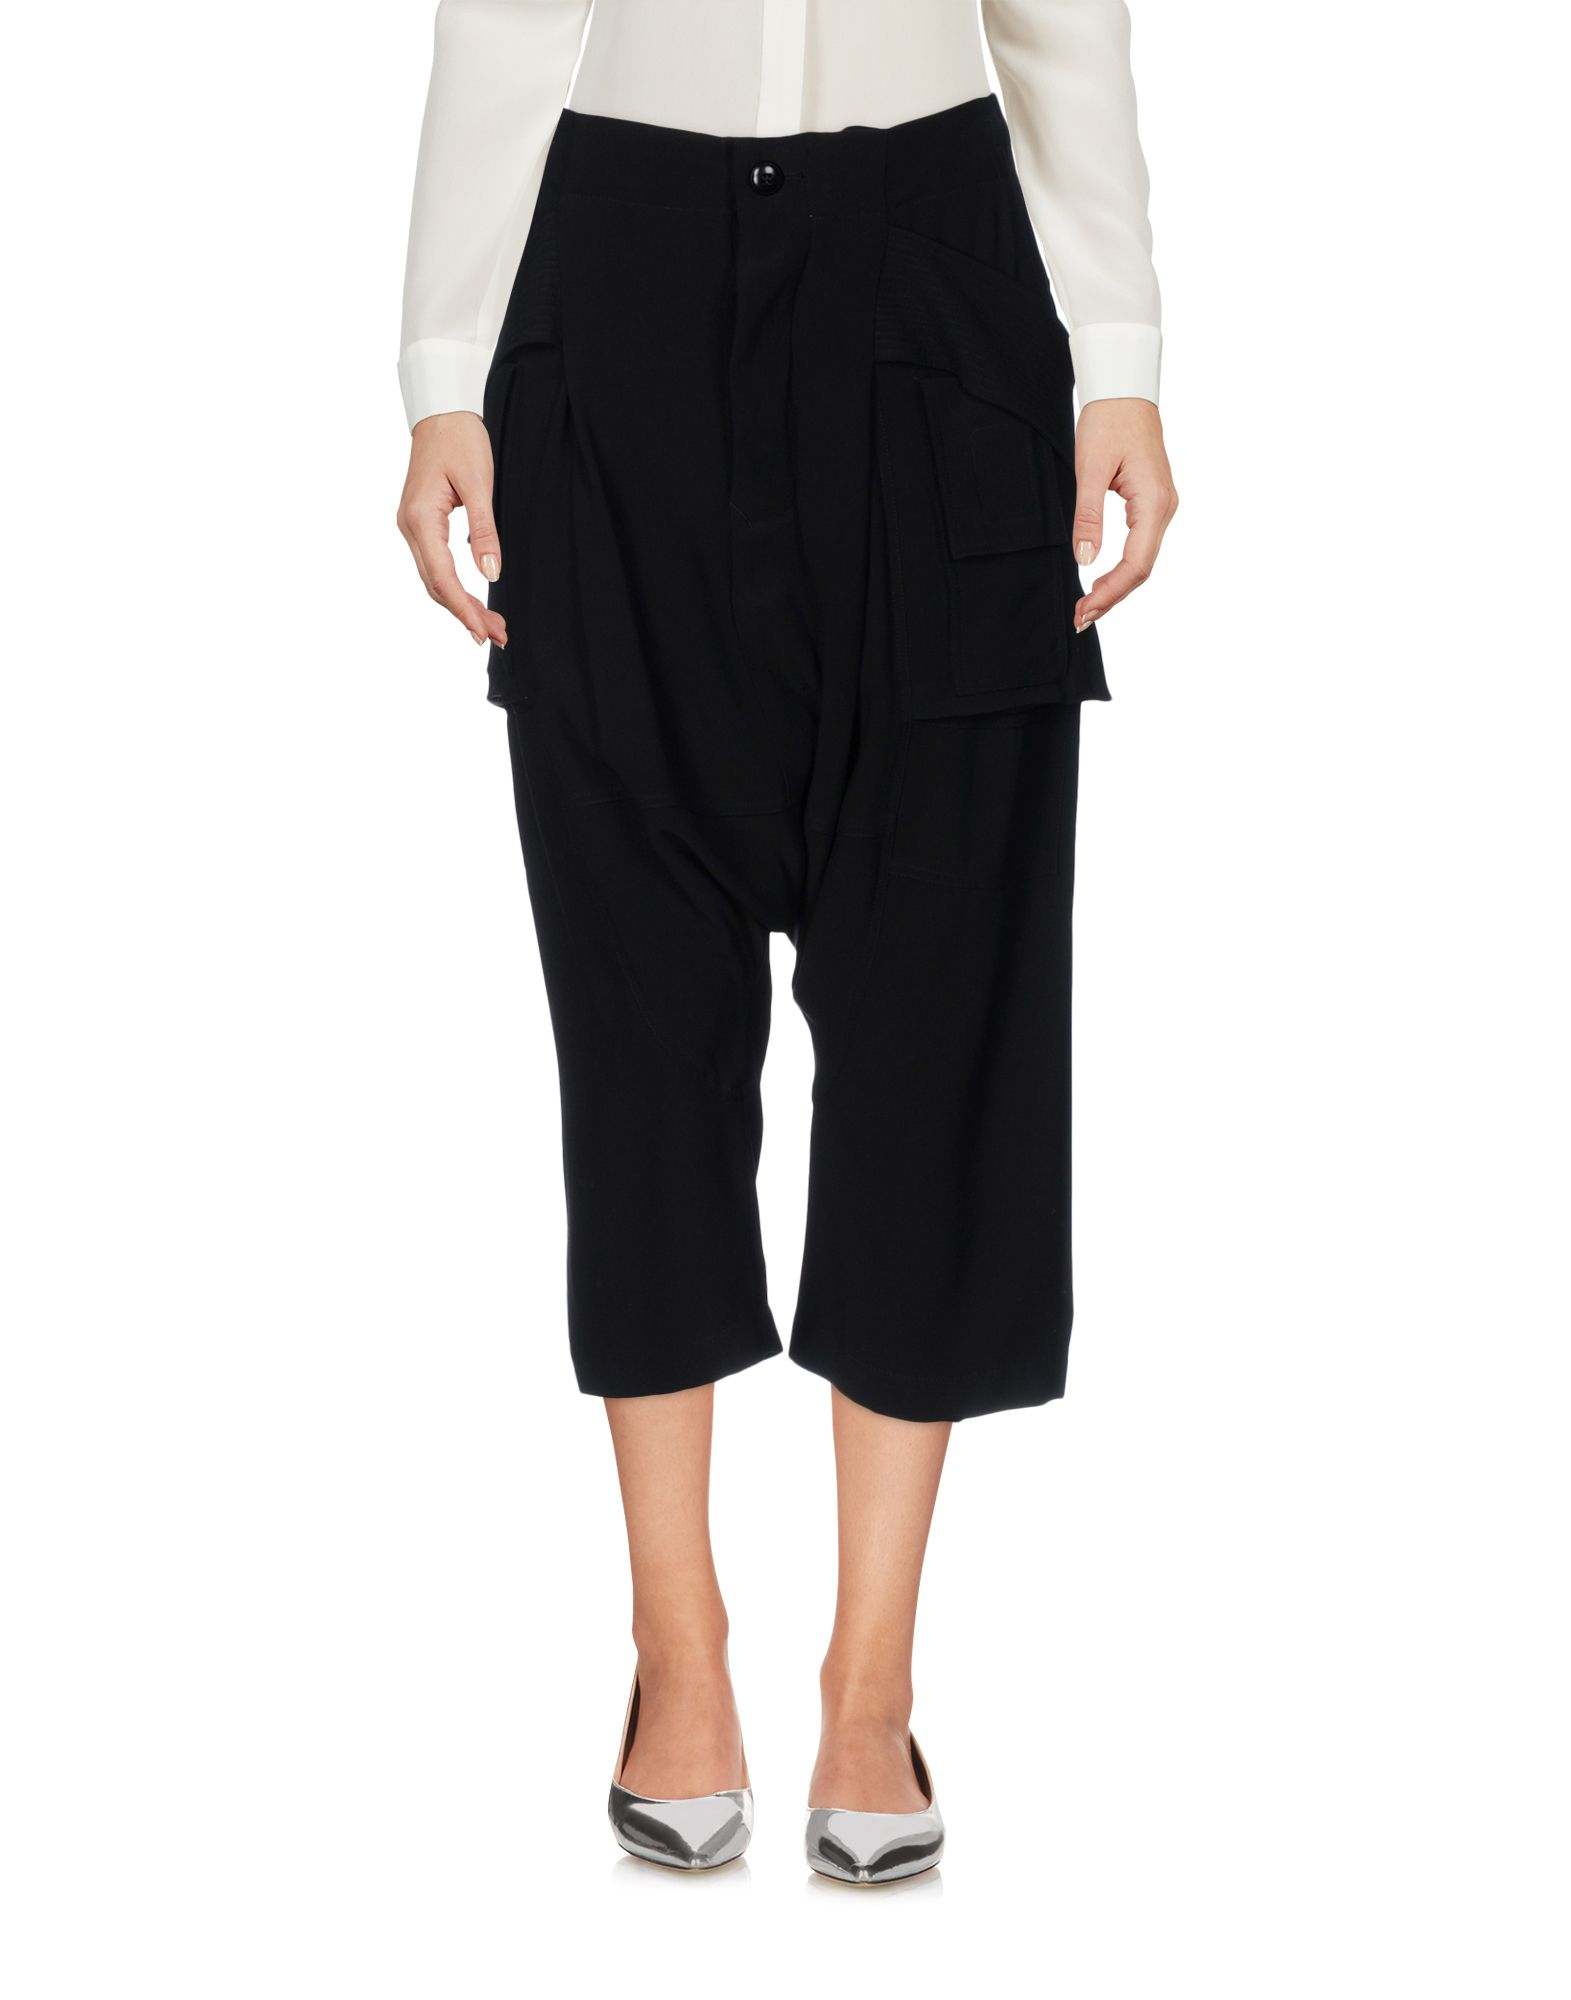 SOLD OUT Pantalone Dritto Rick Owens Donna - Acquista online su lwxzQPsZk4